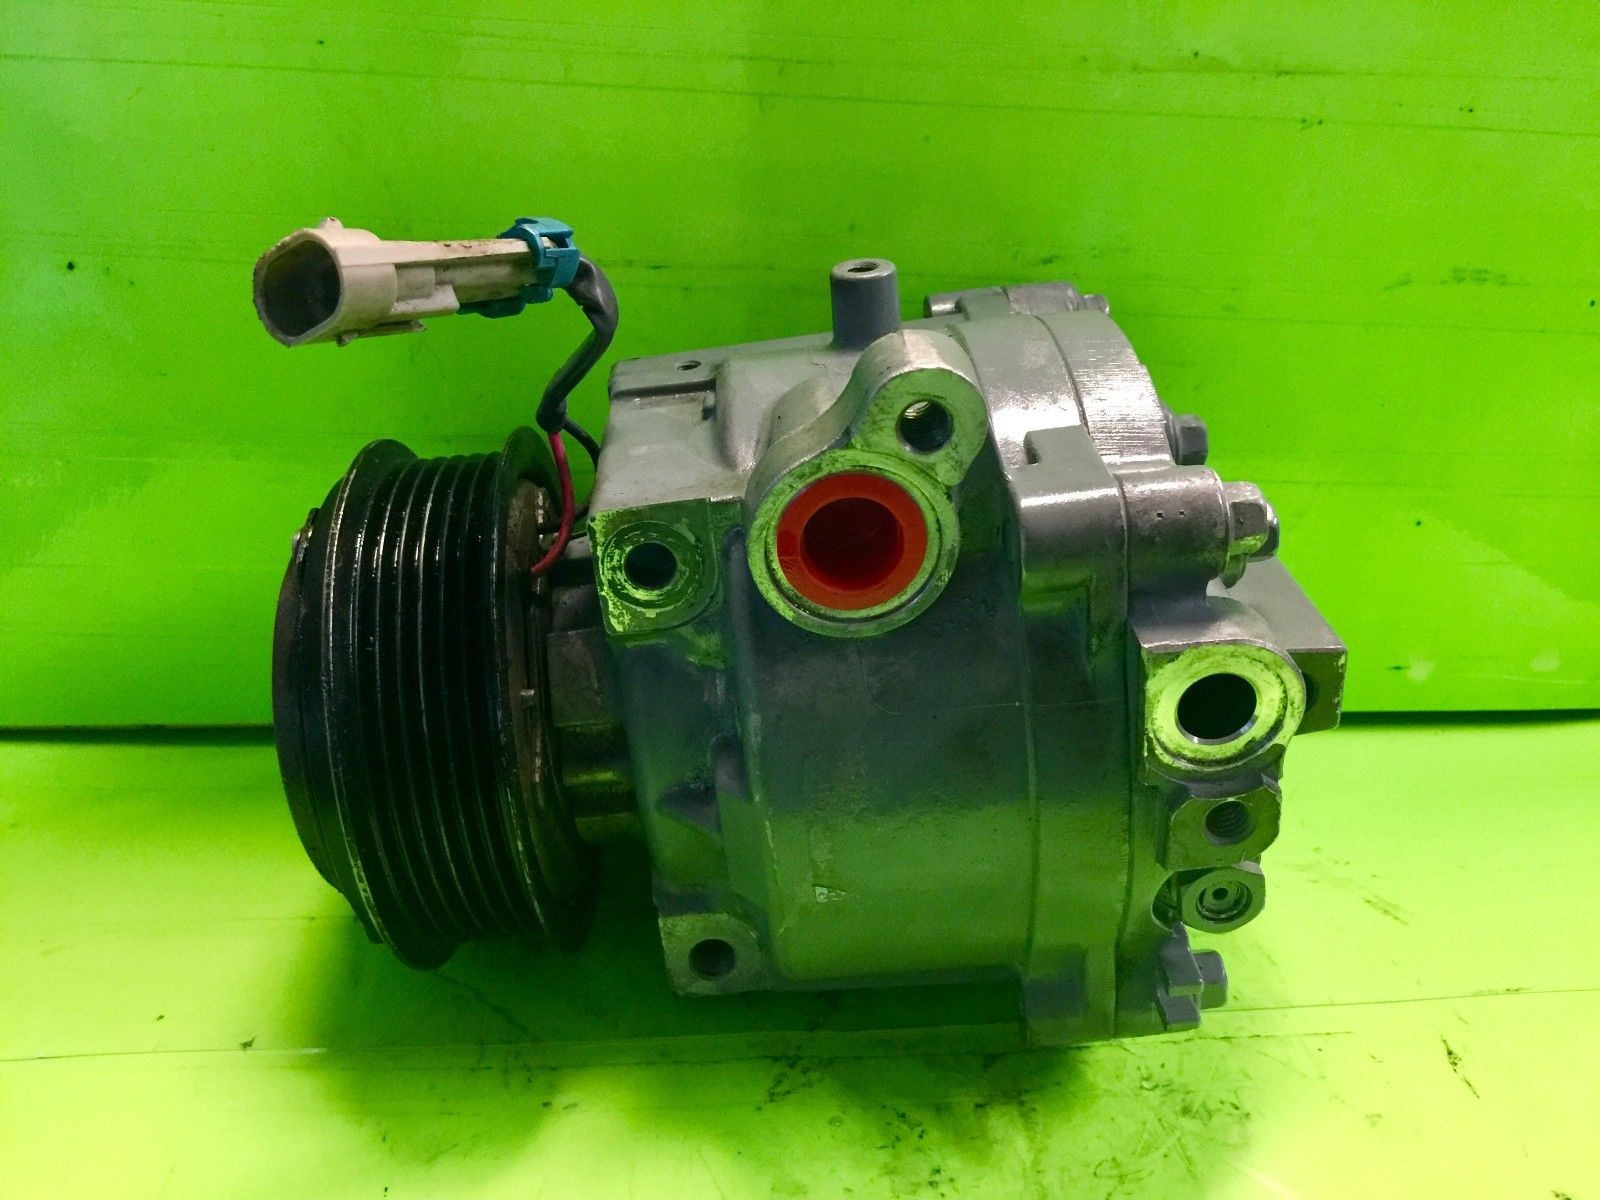 2013-2014 CHEVROLET SONIC 1.4  AC COMPRESSOR WARRANTY Does Not Apply